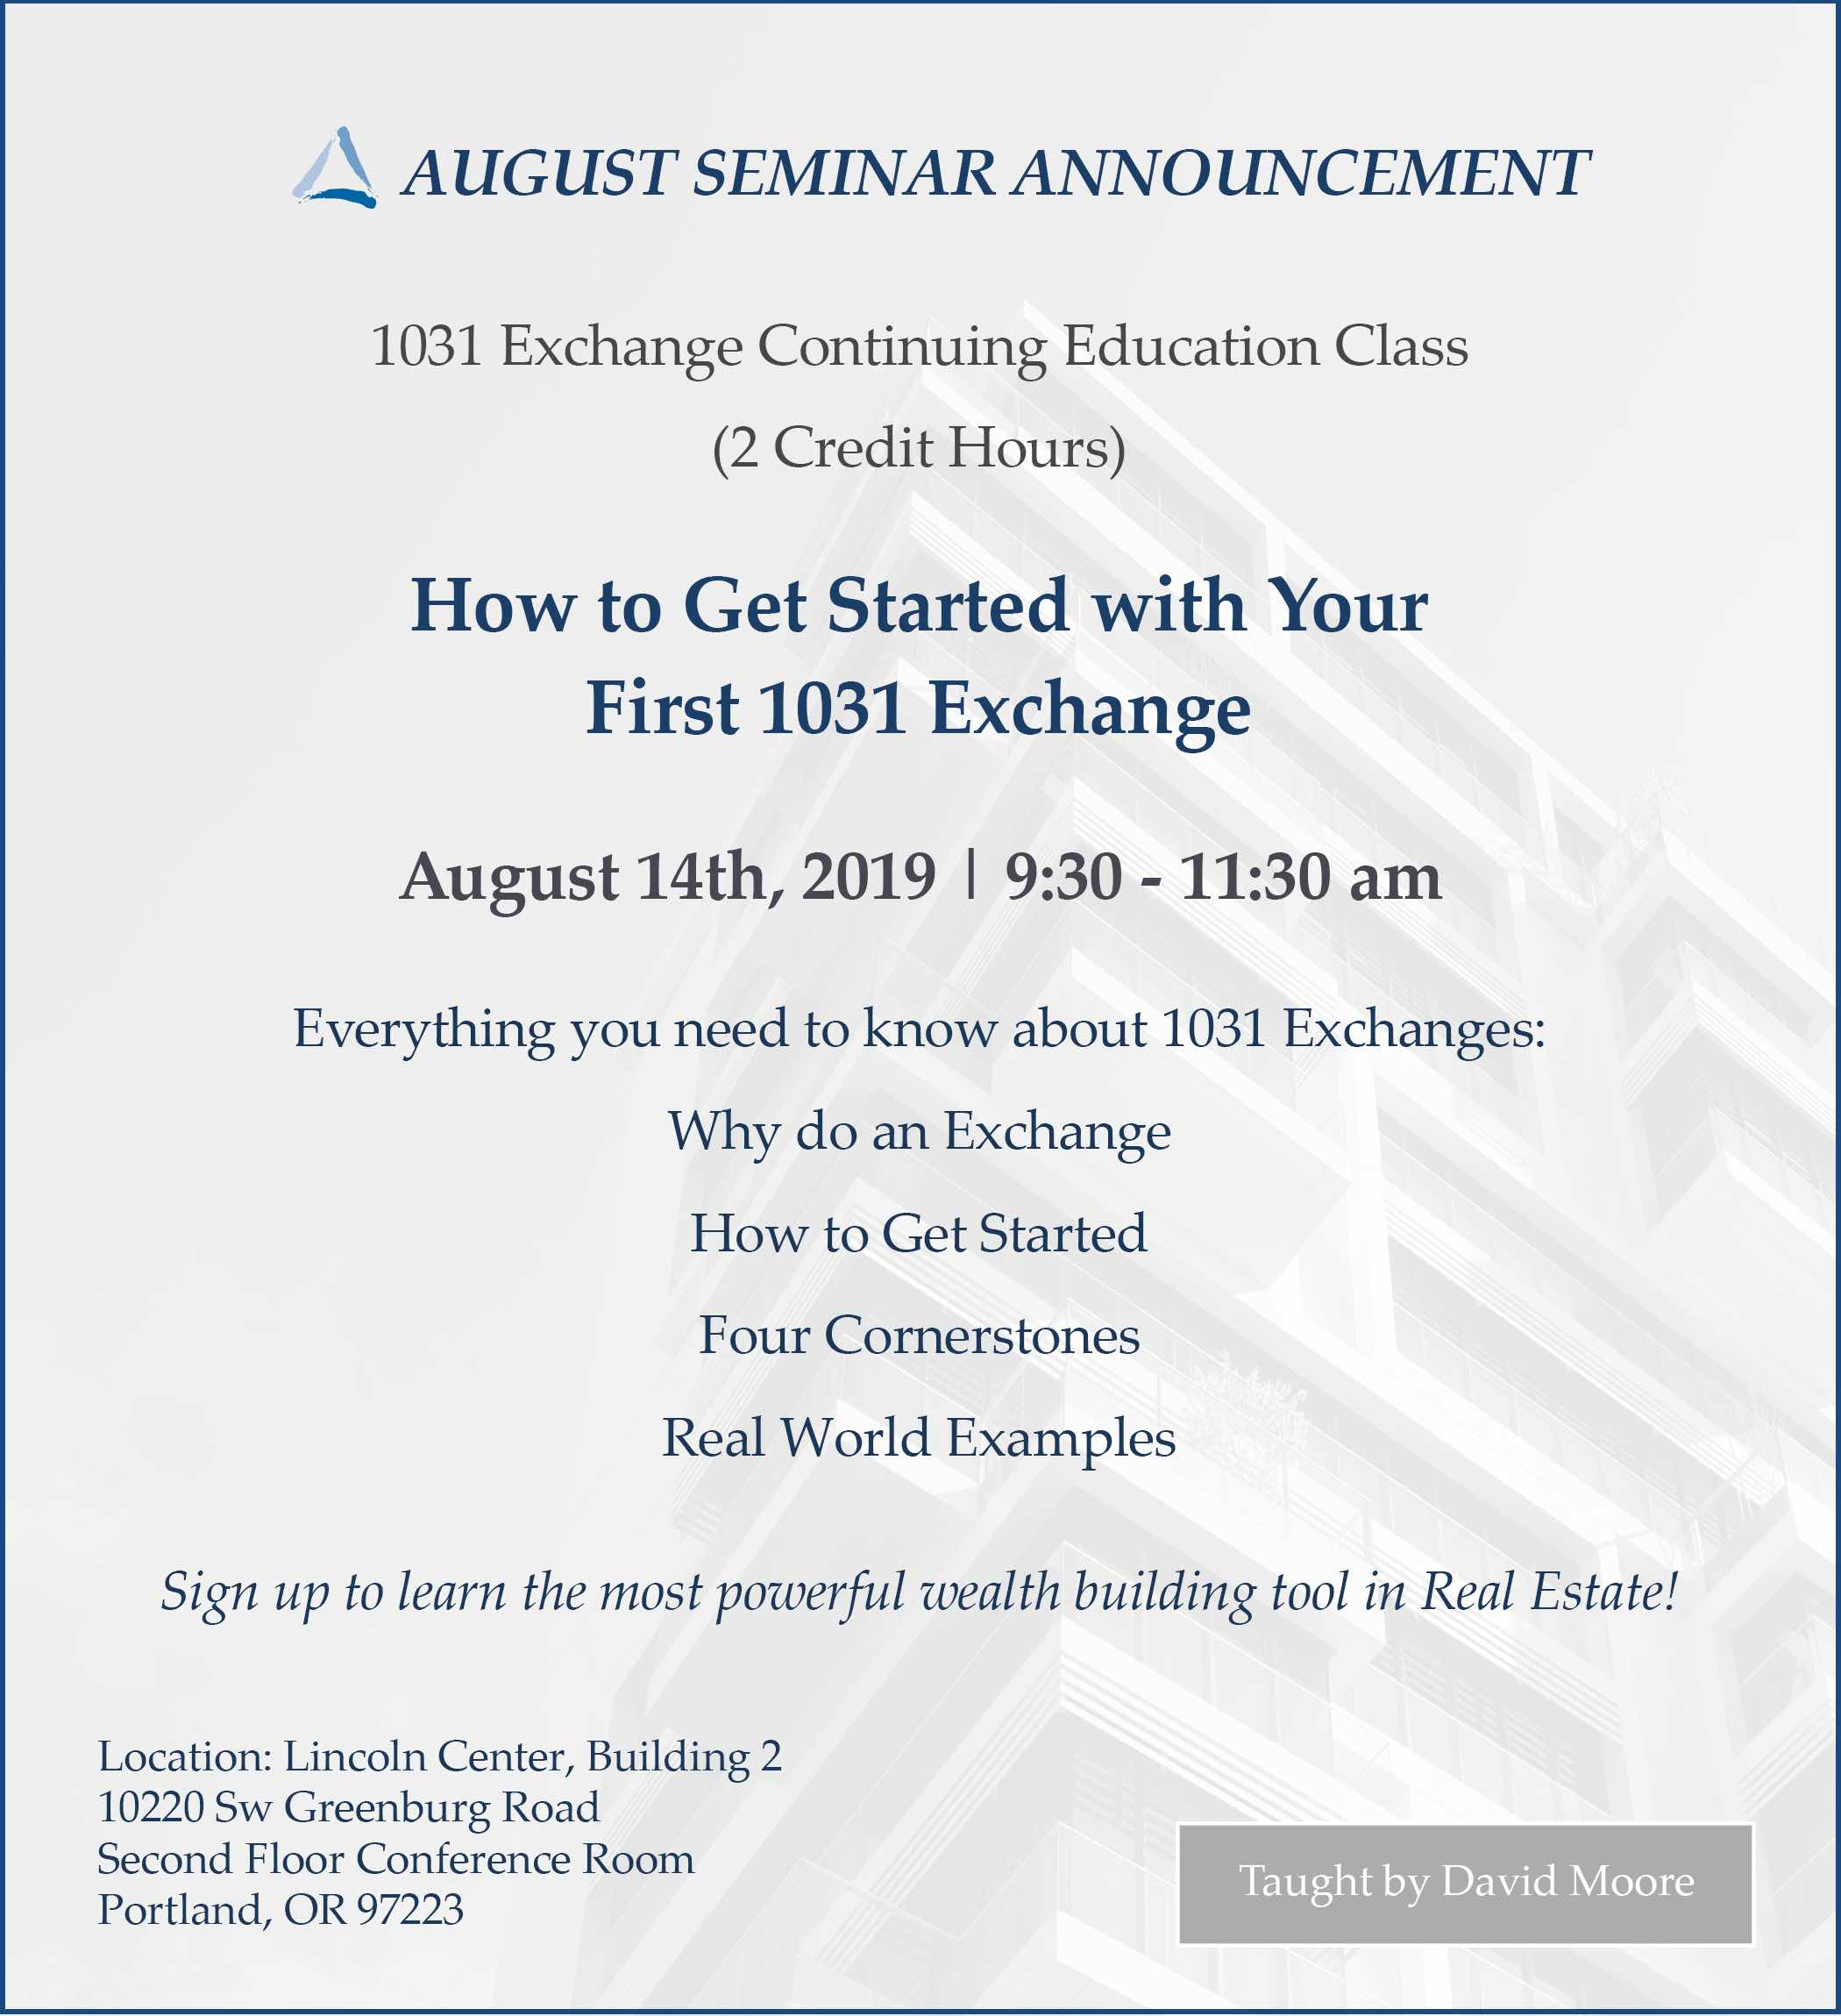 How to get Started with Your First 1031 Exchange